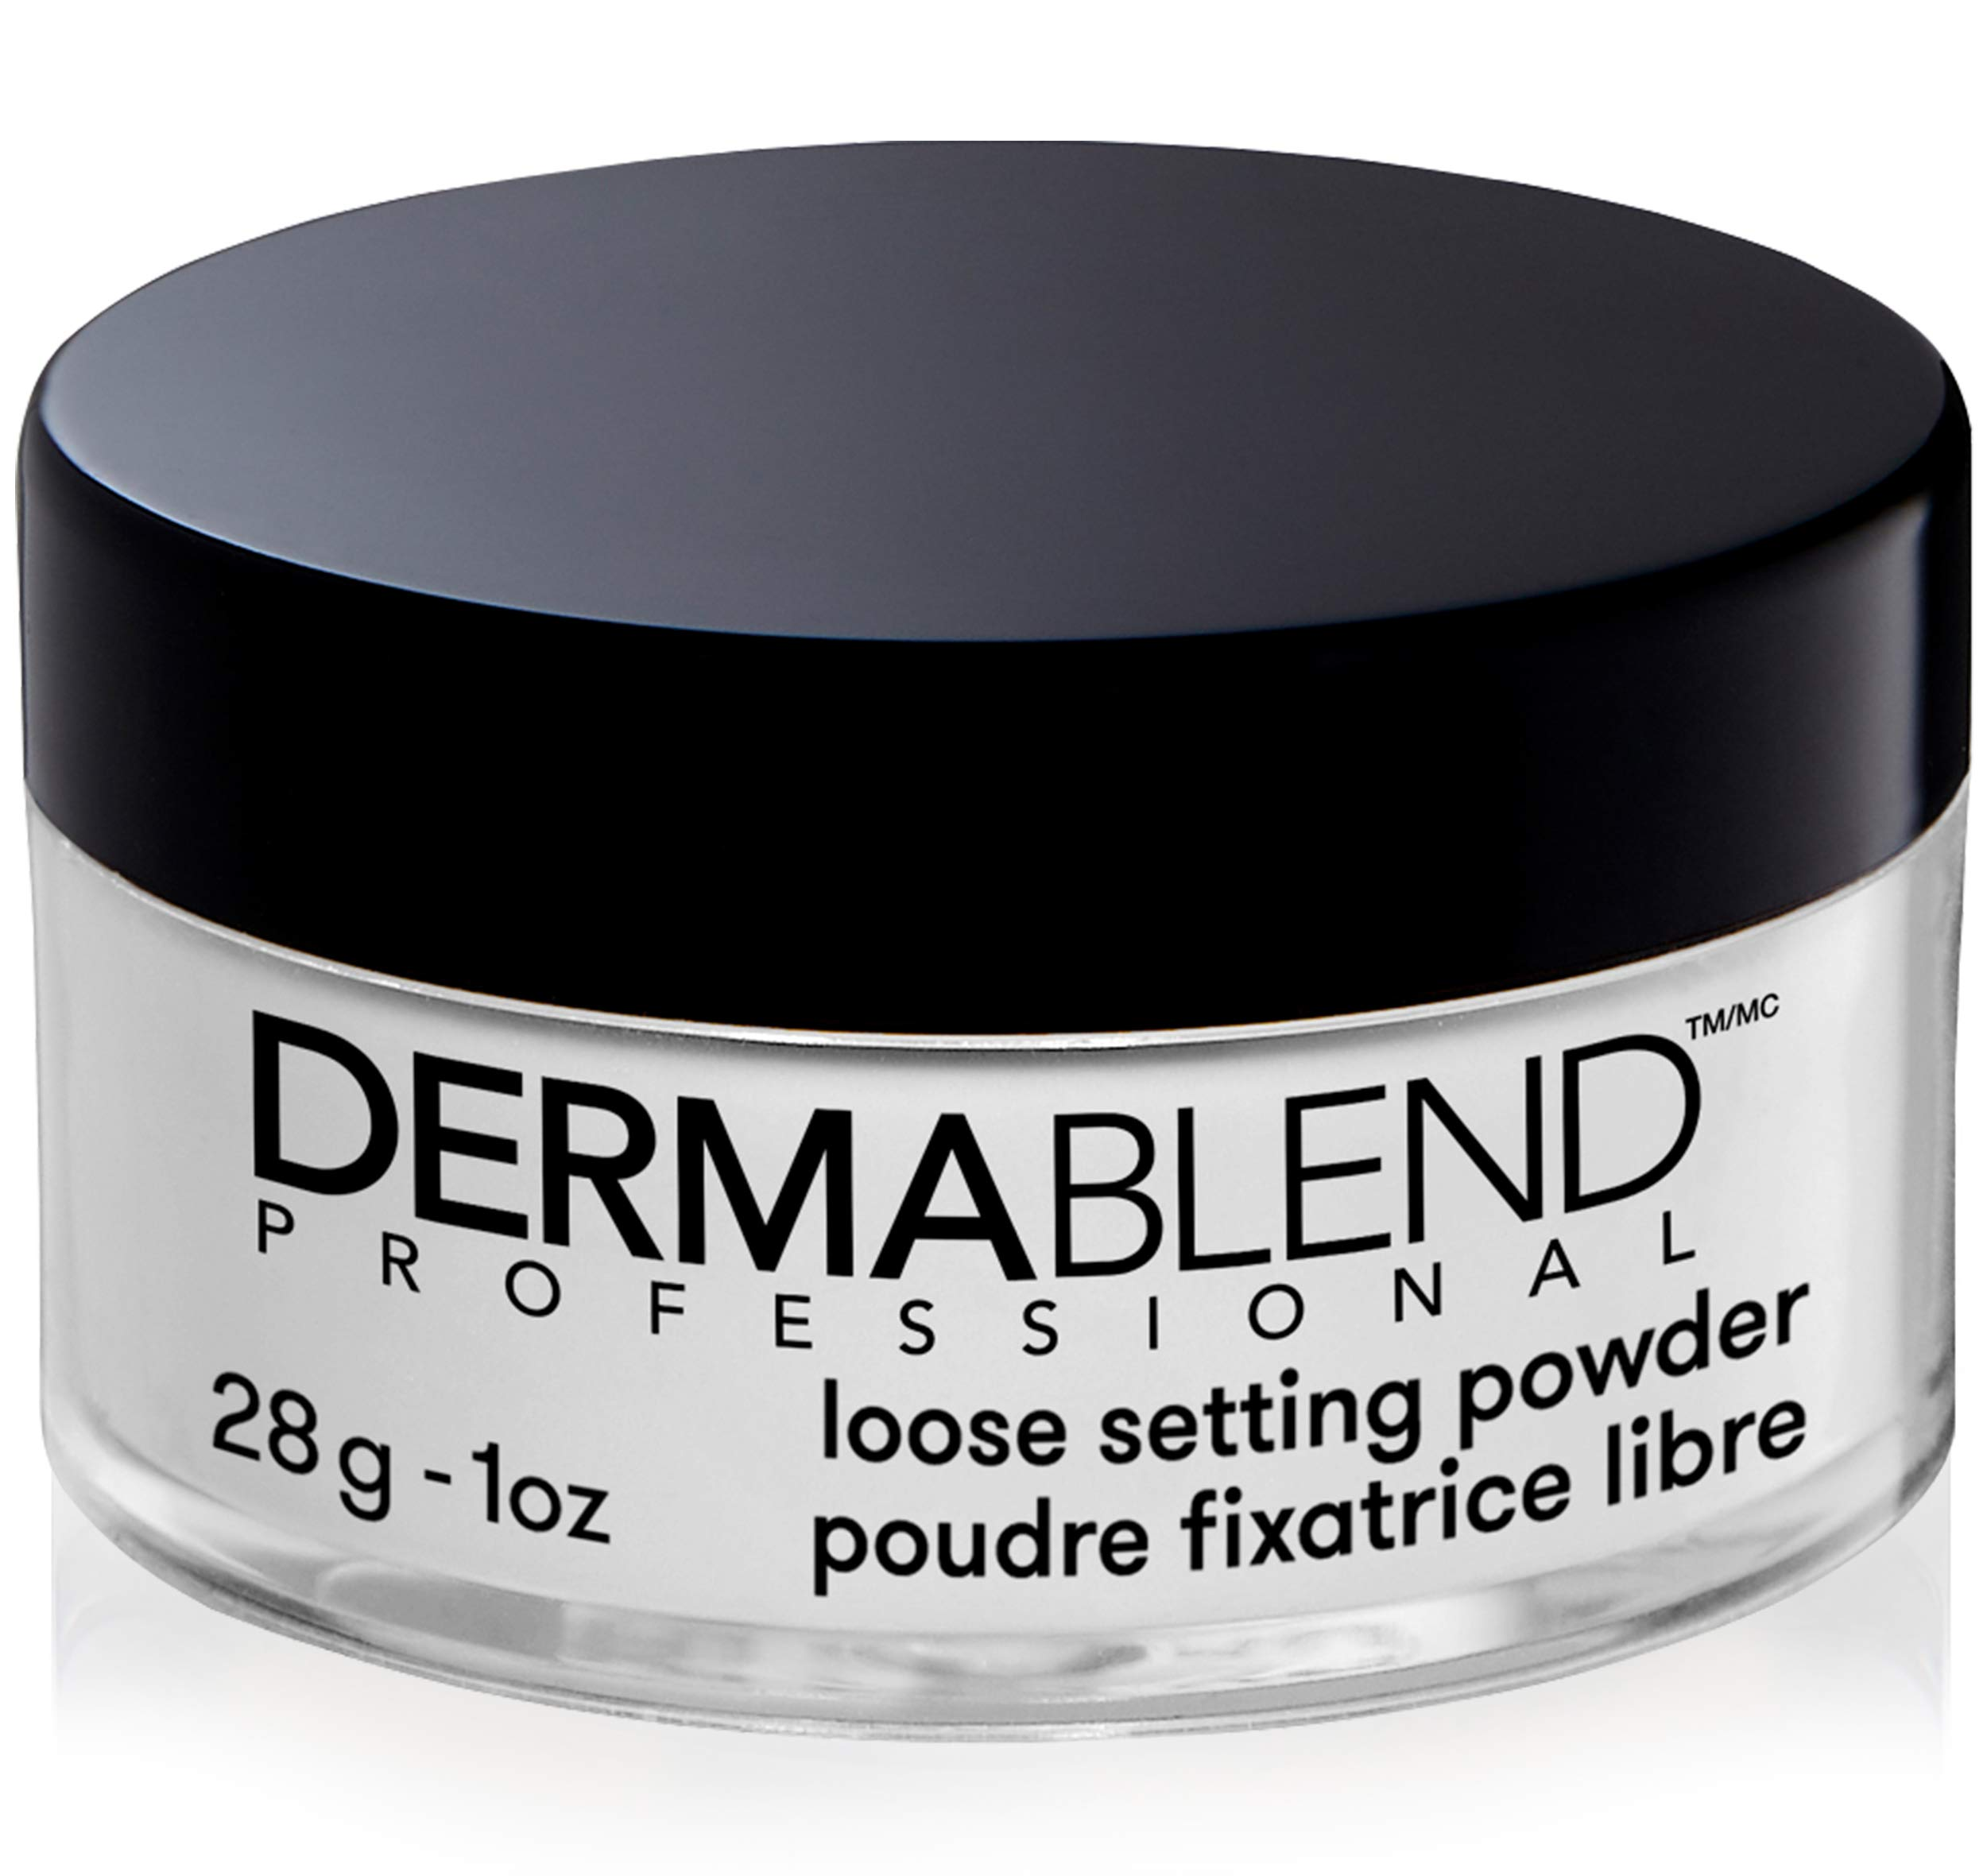 Dermablend Loose Setting Powder, Translucent Powder for Face Makeup, Mattifying Finish and Shine Control, 1oz by Dermablend